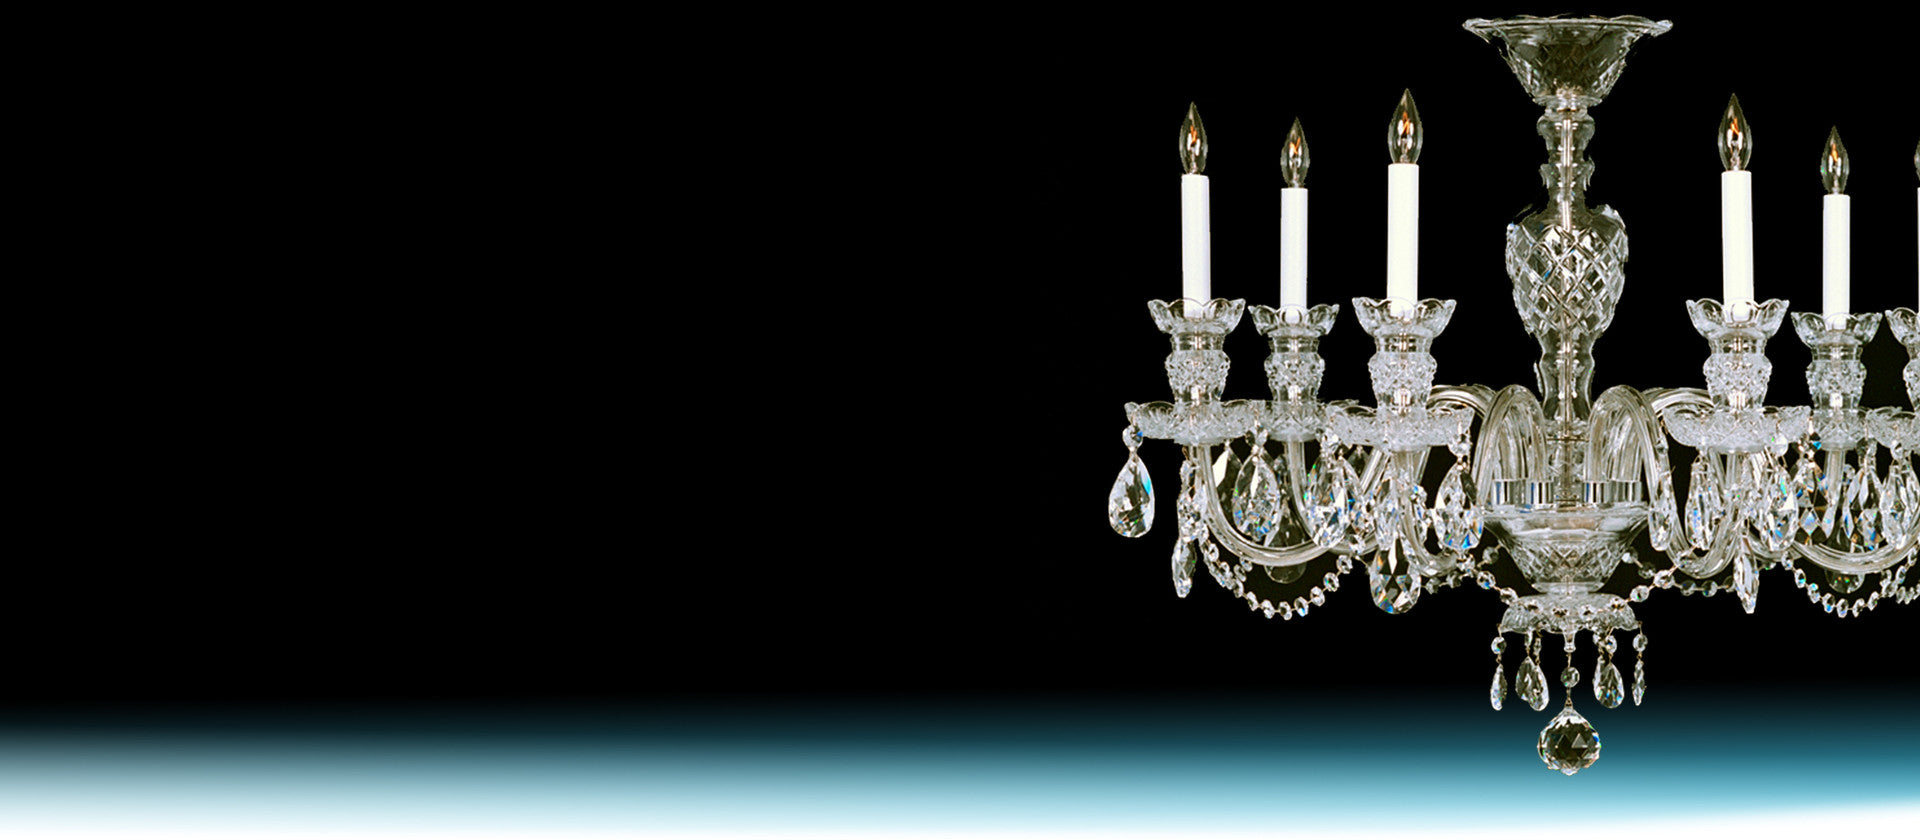 Crystal chandeliers and wall sconces direct free shipping crystal chandeliers and sconces arubaitofo Gallery